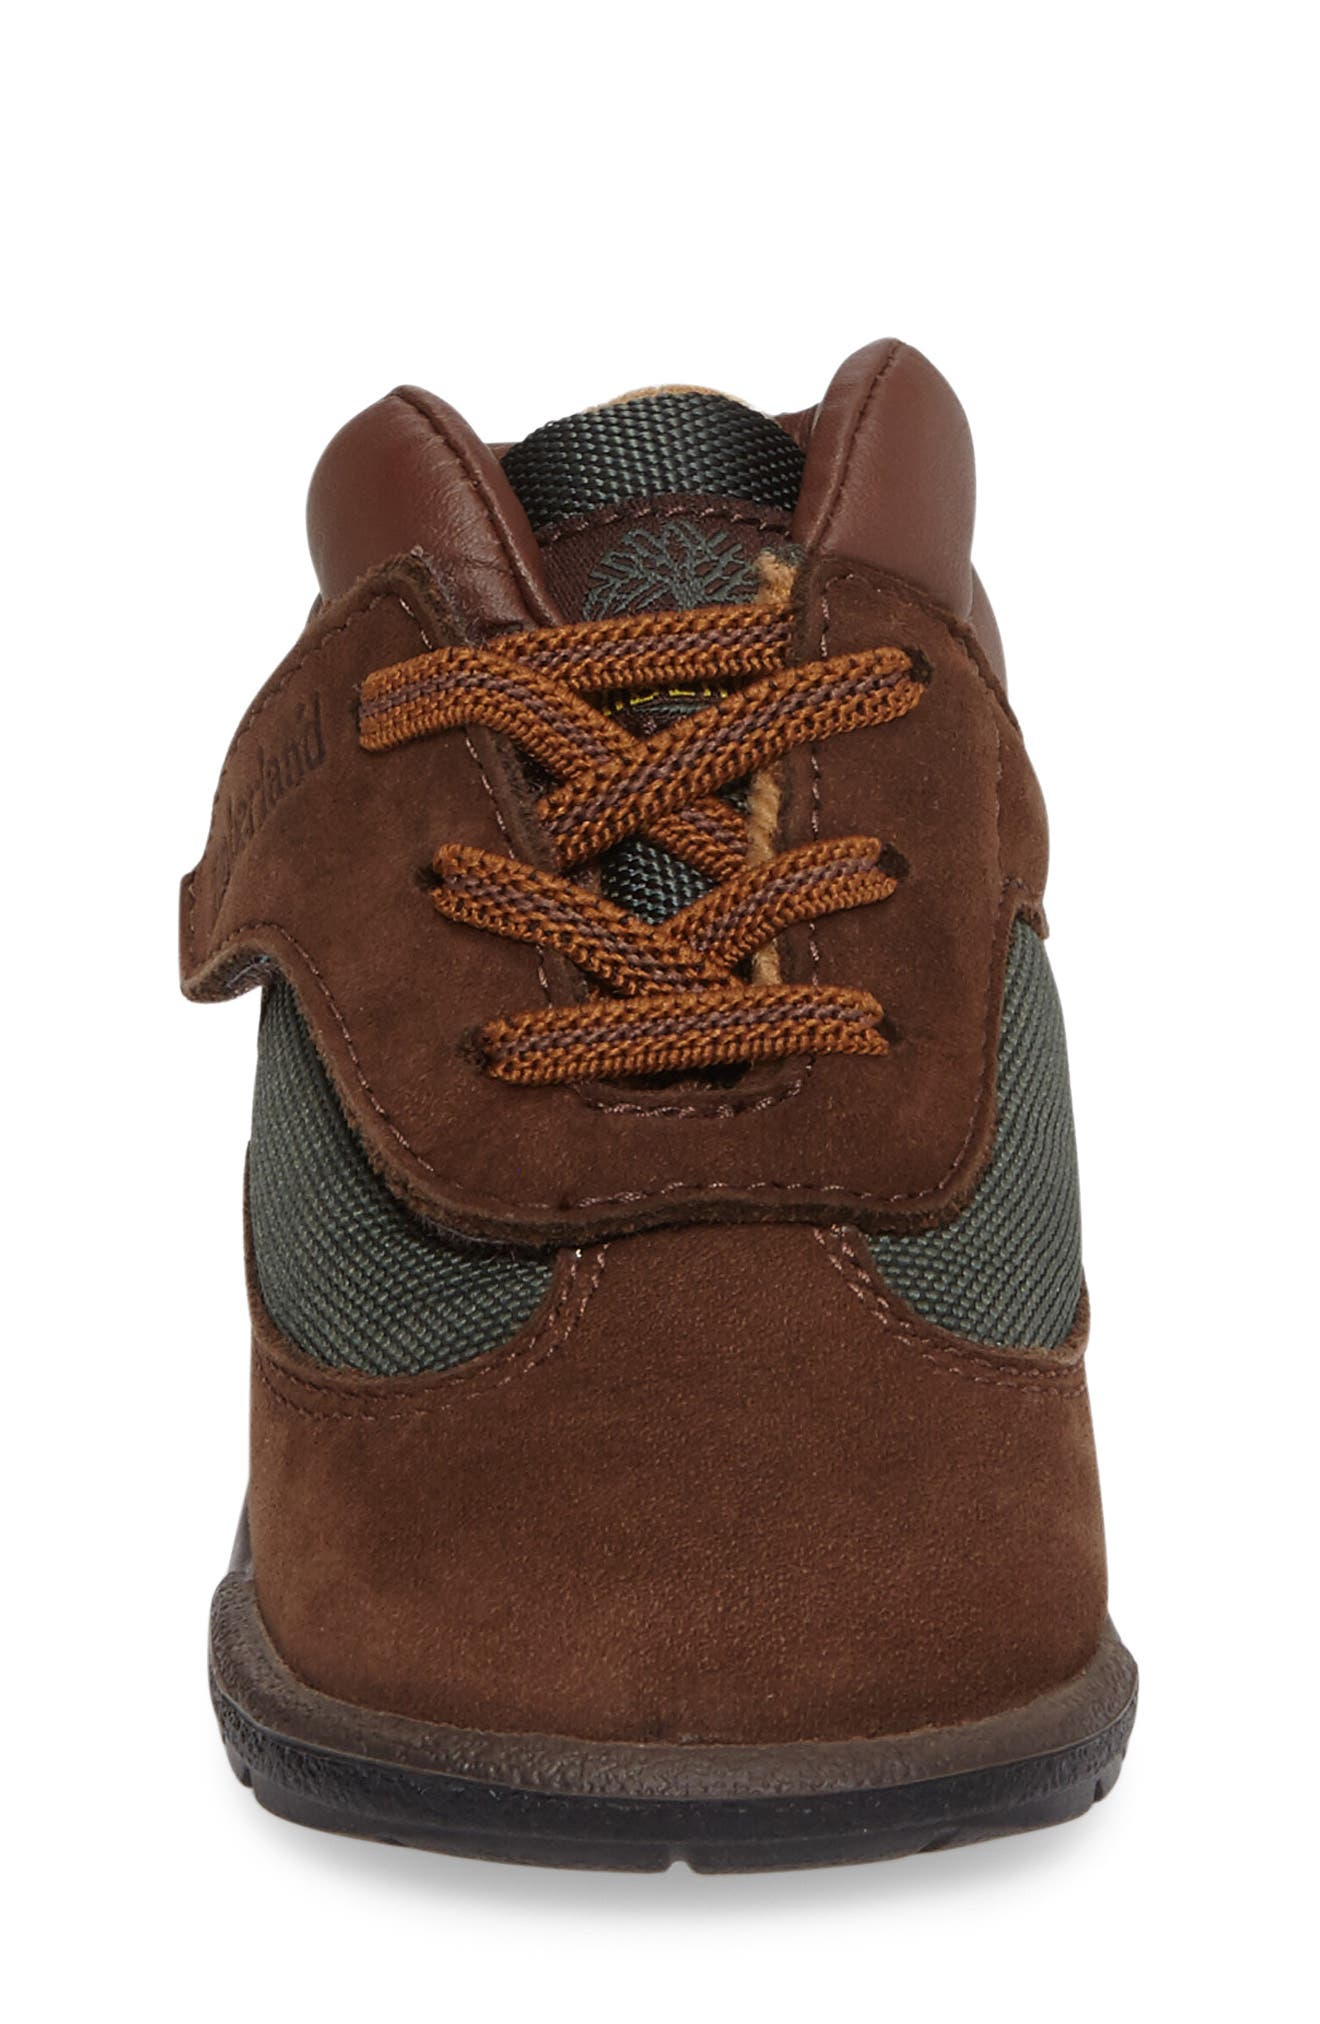 Field Crib Boot,                             Alternate thumbnail 3, color,                             211